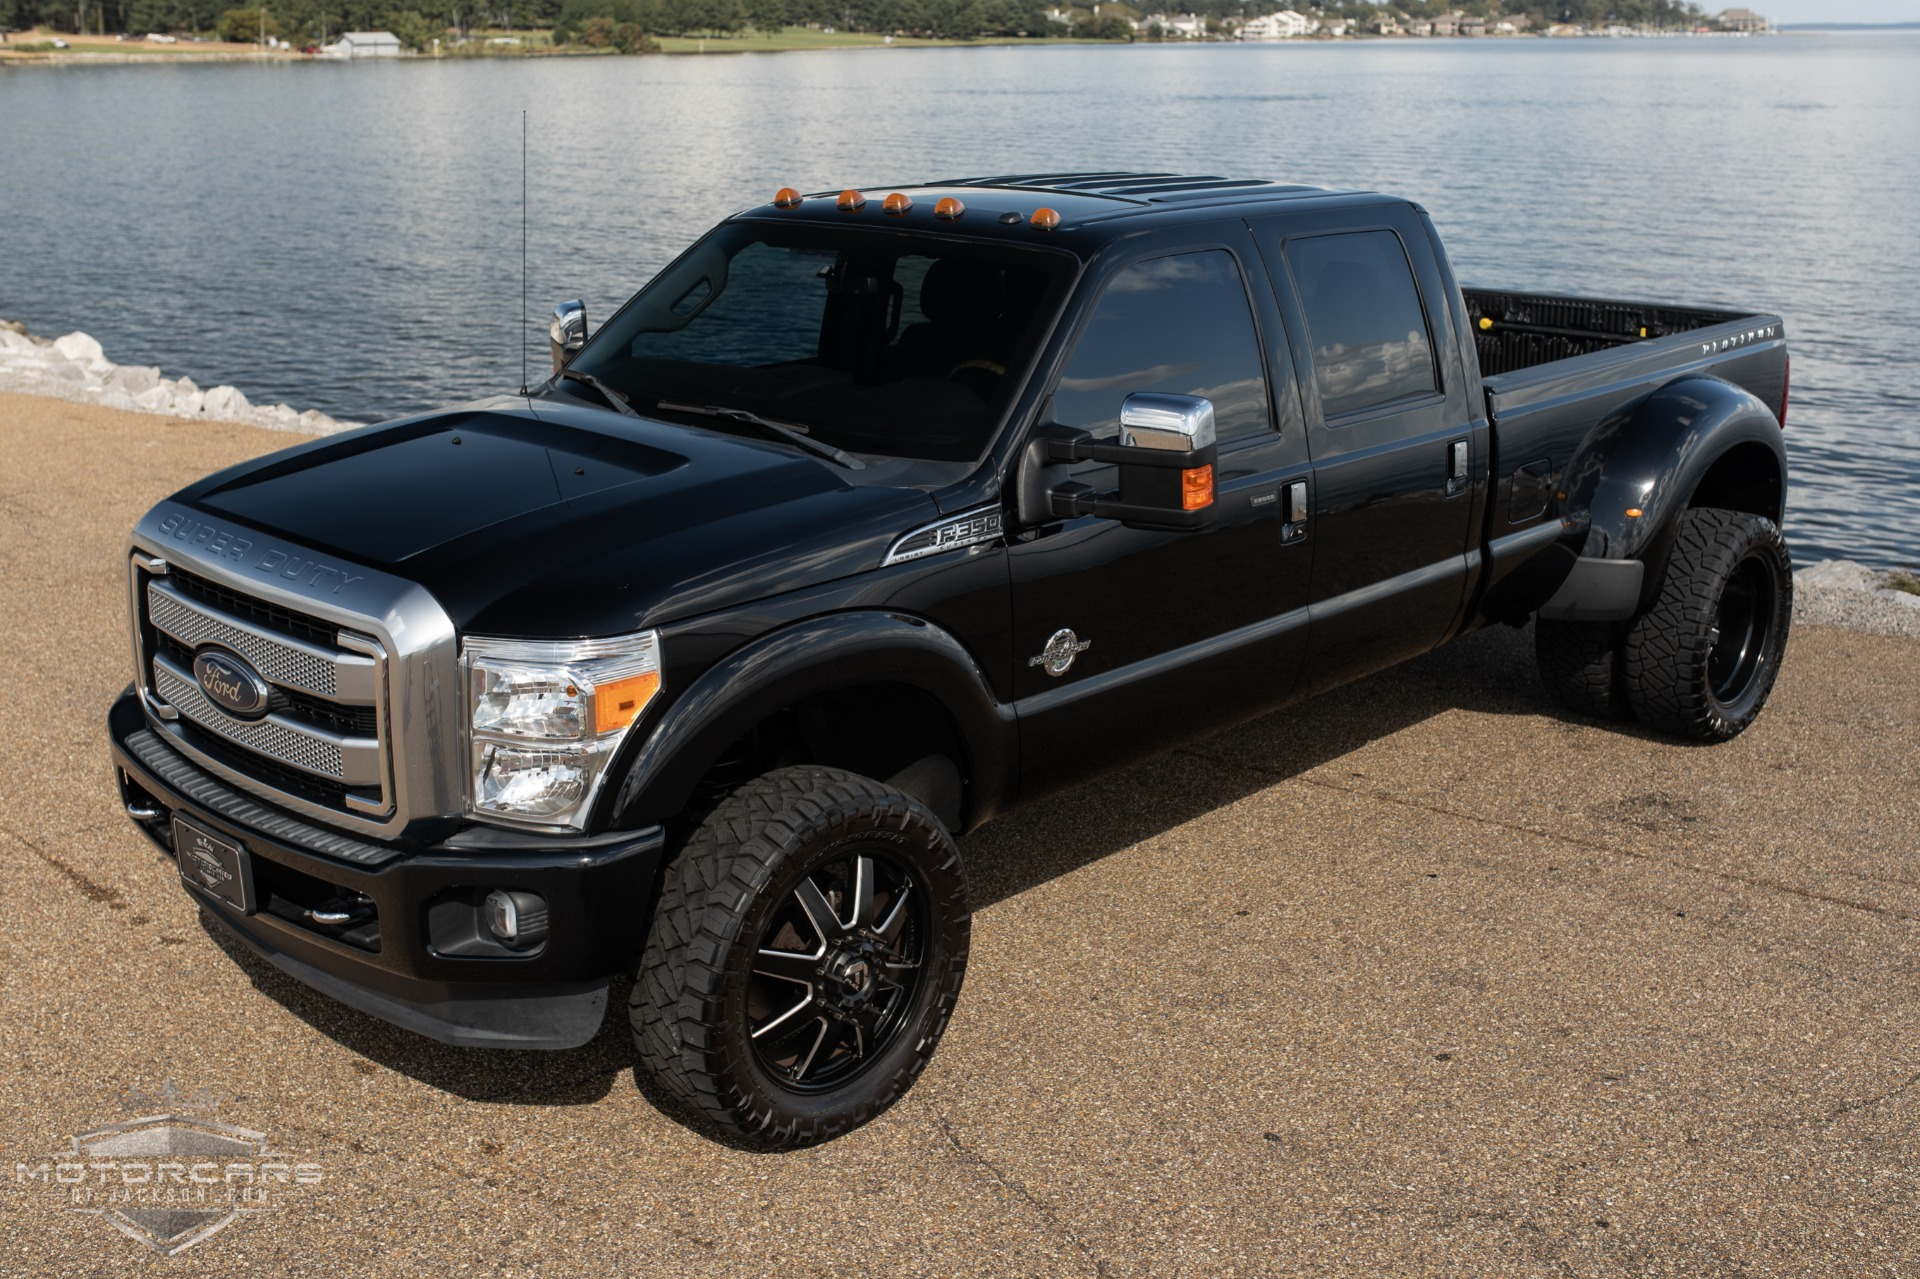 Used-2016-Ford-Super-Duty-F-350-DRW-Platinum-Jackson-MS